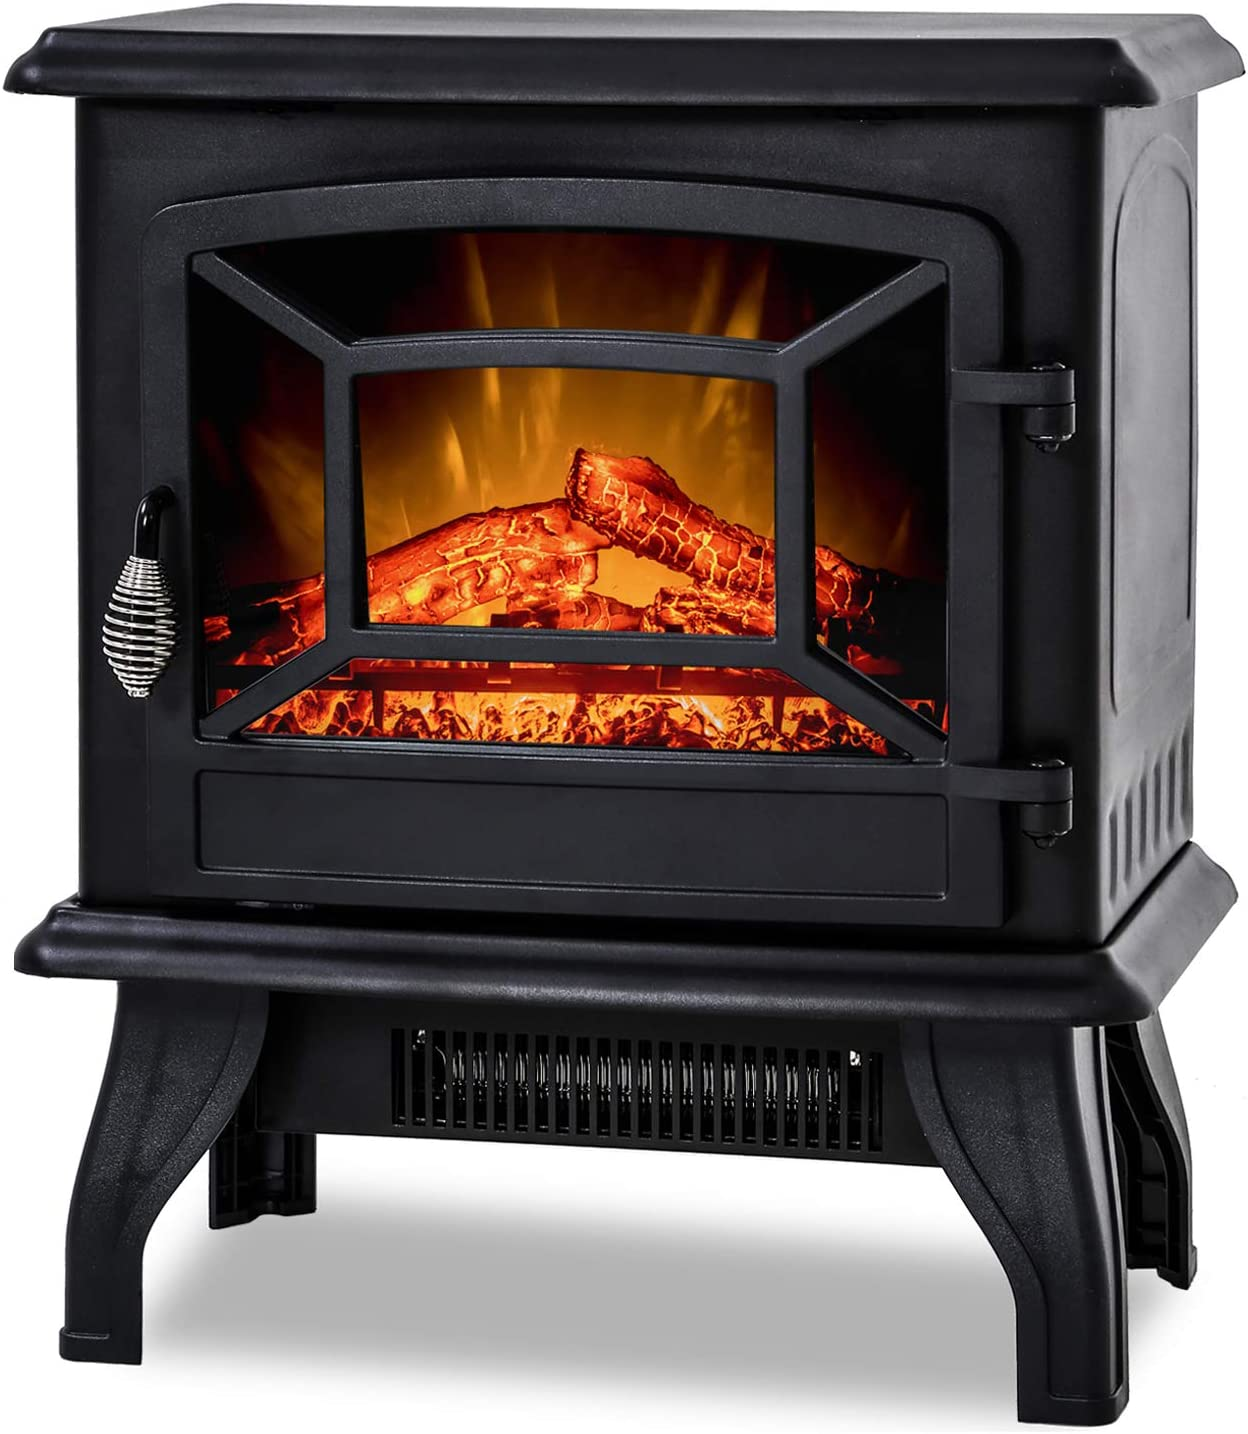 """BestMassage Electric Fireplace Heater Stove Portable Space Heater Freestanding Fireplace for Home Office with Realistic Log Flame Effect 1500W CSA Approved Safety 20"""" Wx17 Hx10 D,Black"""